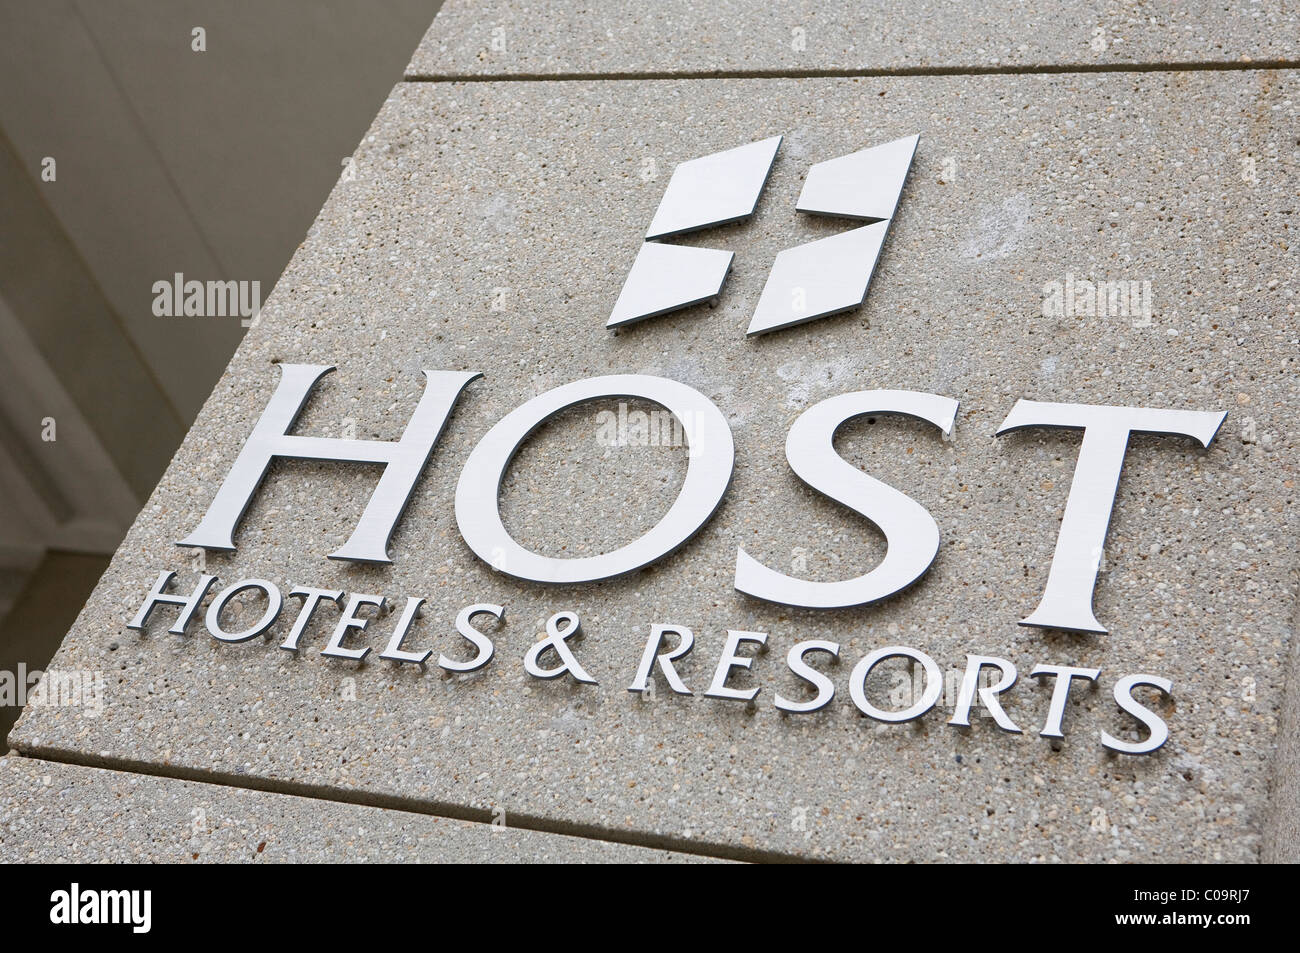 The headquarters of Host Hotels & Resorts.  - Stock Image